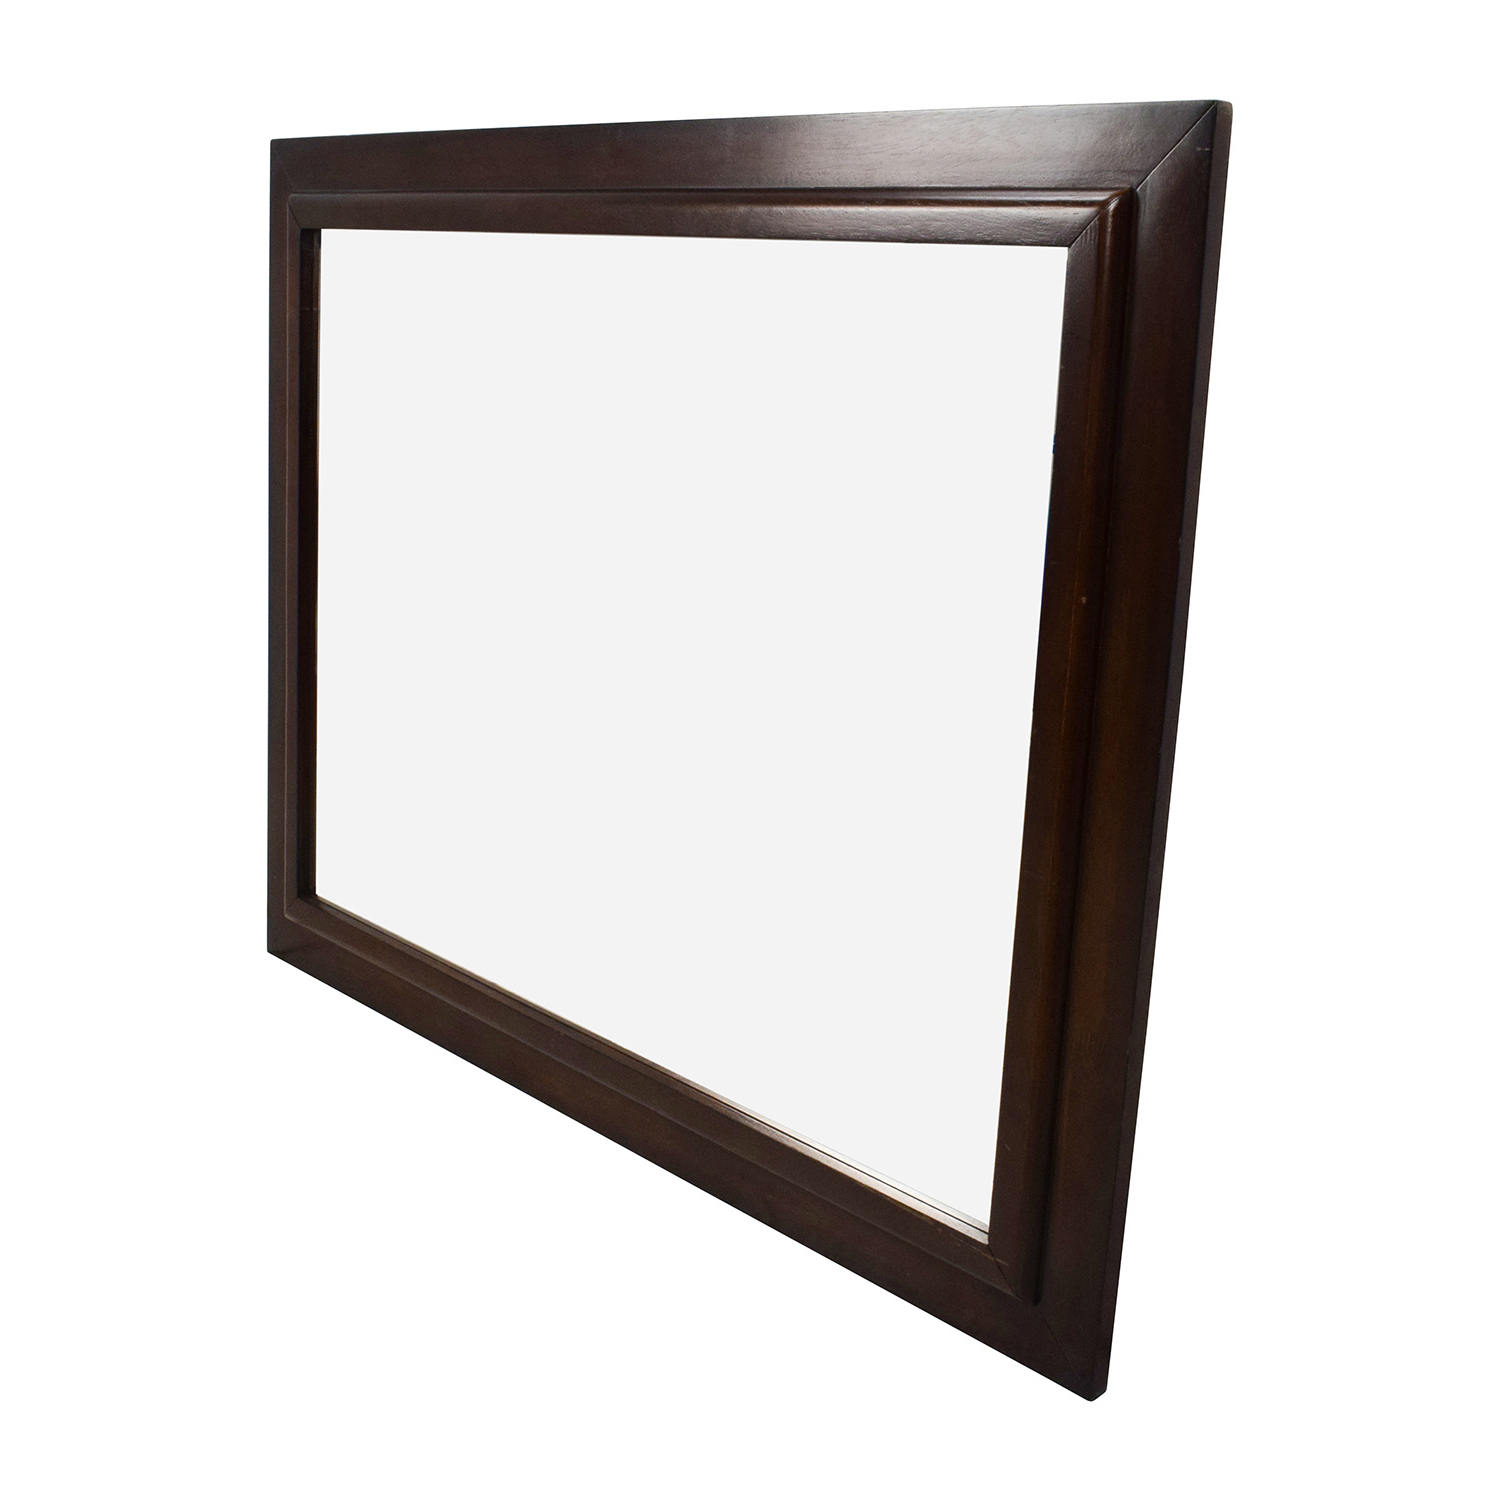 [%80% Off – Large Square Wood Framed Wall Mirror / Decor For Favorite Large Wood Wall Mirrors|Large Wood Wall Mirrors Within Fashionable 80% Off – Large Square Wood Framed Wall Mirror / Decor|Favorite Large Wood Wall Mirrors Throughout 80% Off – Large Square Wood Framed Wall Mirror / Decor|Current 80% Off – Large Square Wood Framed Wall Mirror / Decor Within Large Wood Wall Mirrors%] (View 1 of 20)